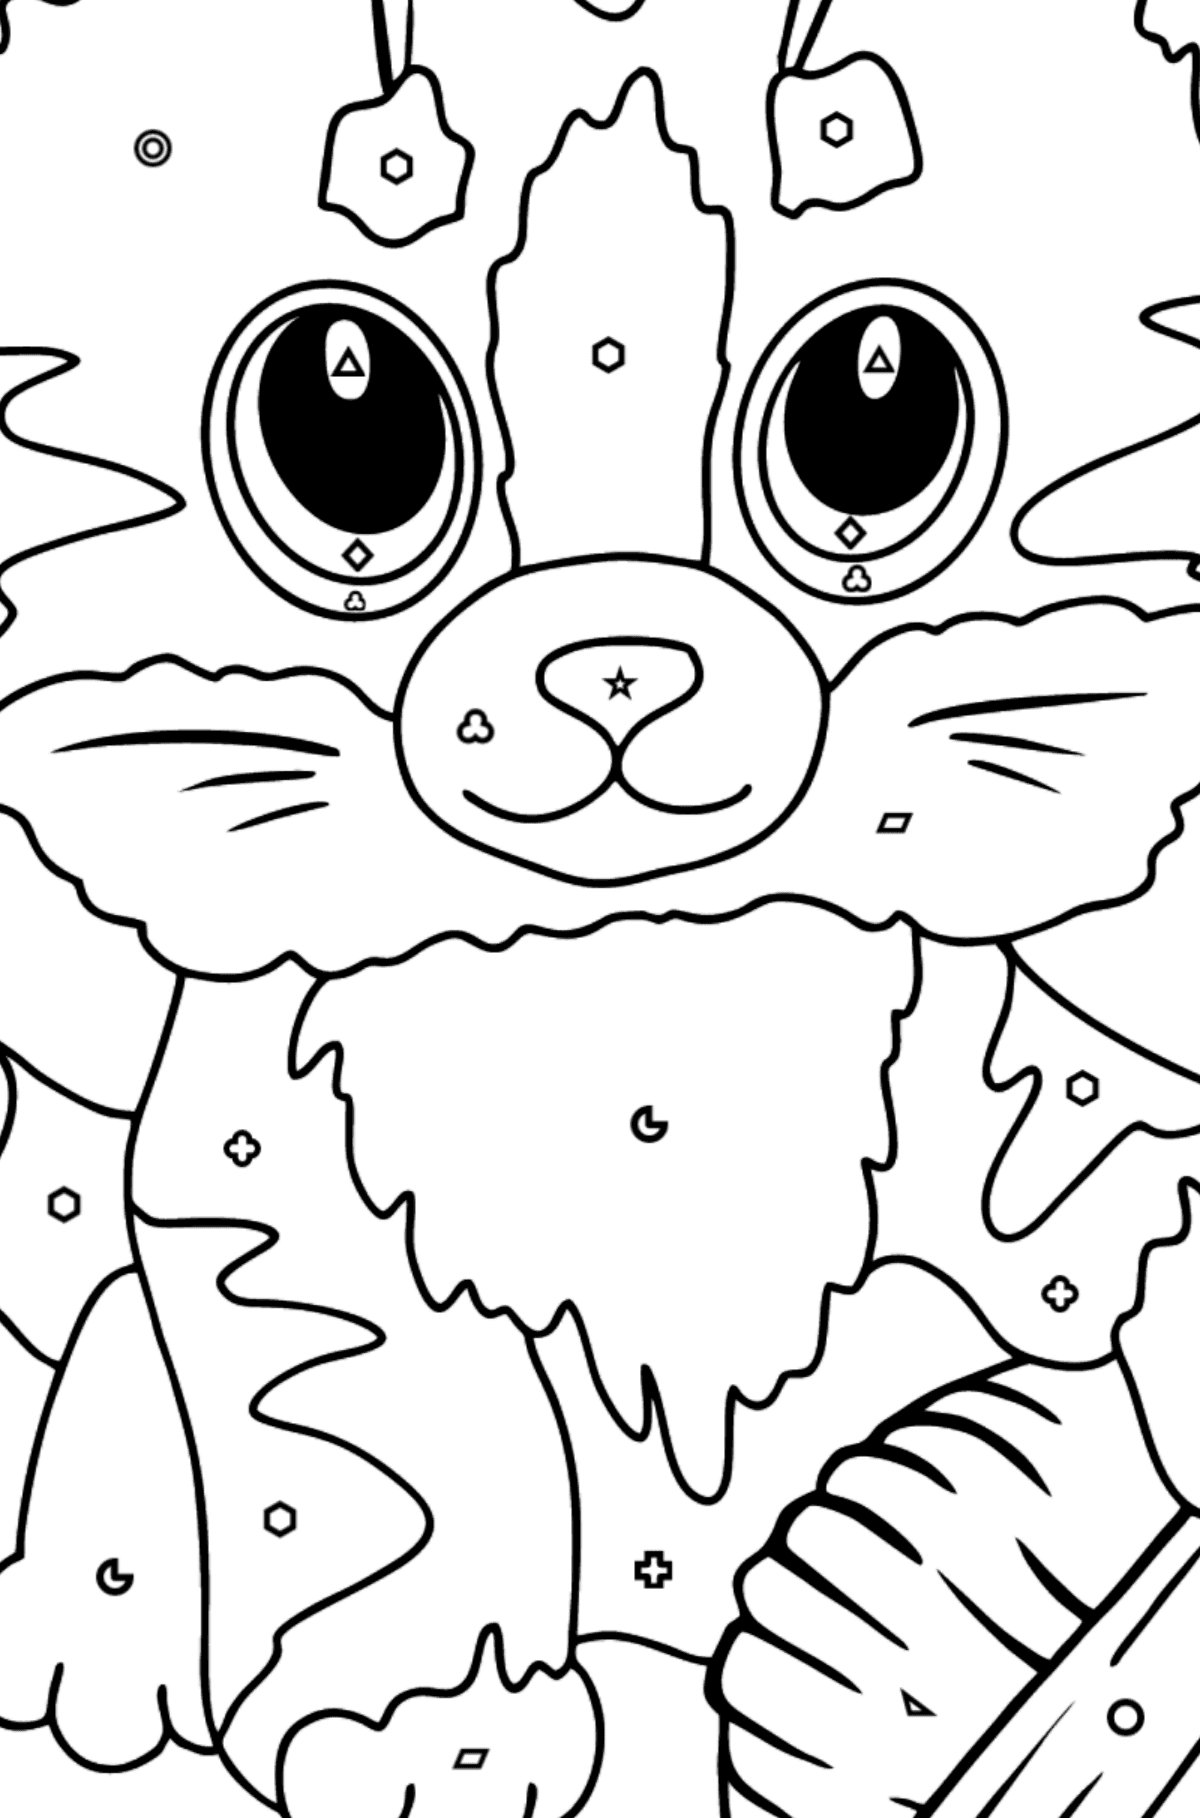 Cute Cat Coloring Page - Coloring by Geometric Shapes for Kids